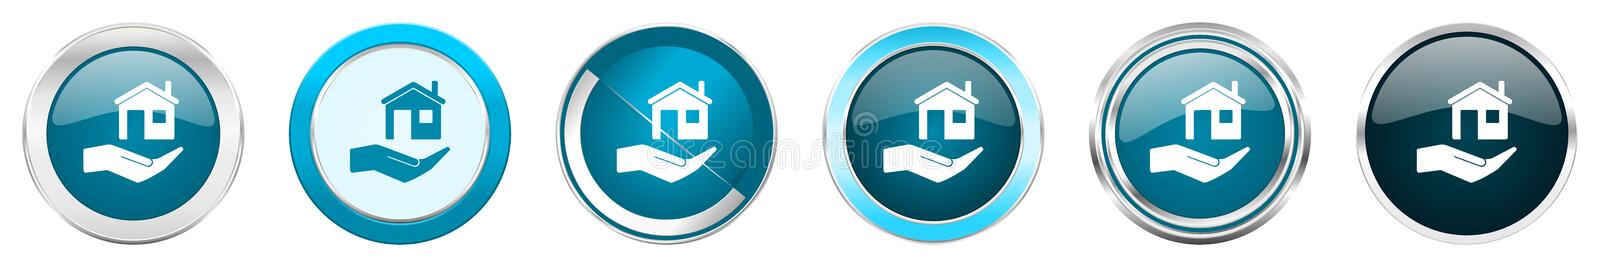 House care silver metallic chrome border icons in 6 options, set of web blue round buttons isolated on white background vector illustration